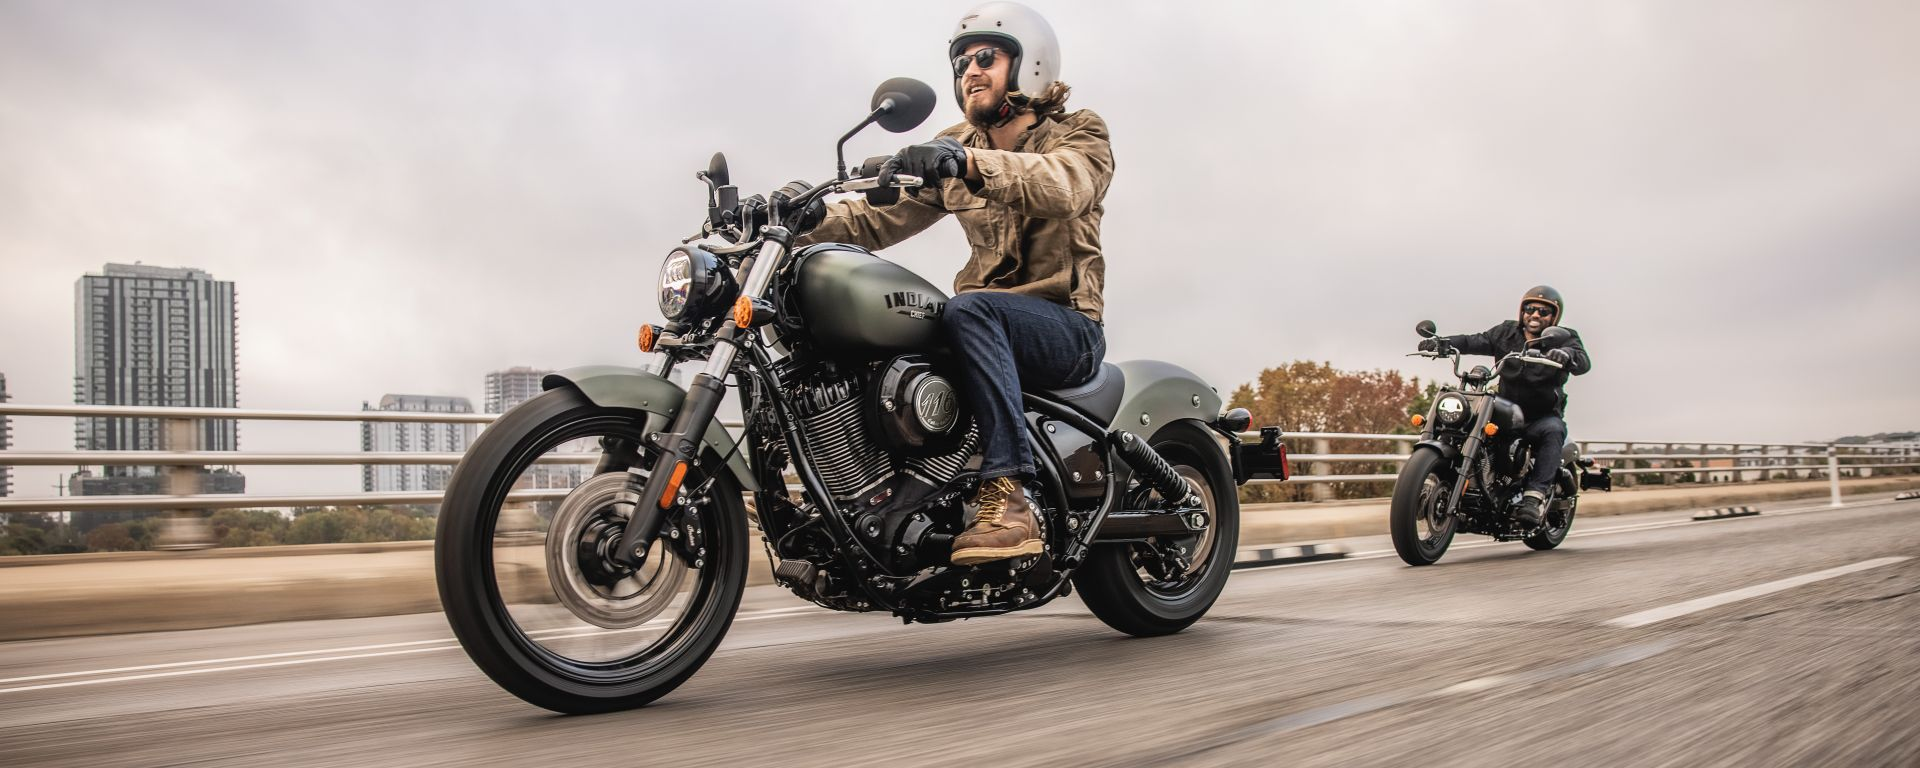 Indian Chief Dark Horse 2022 in strada